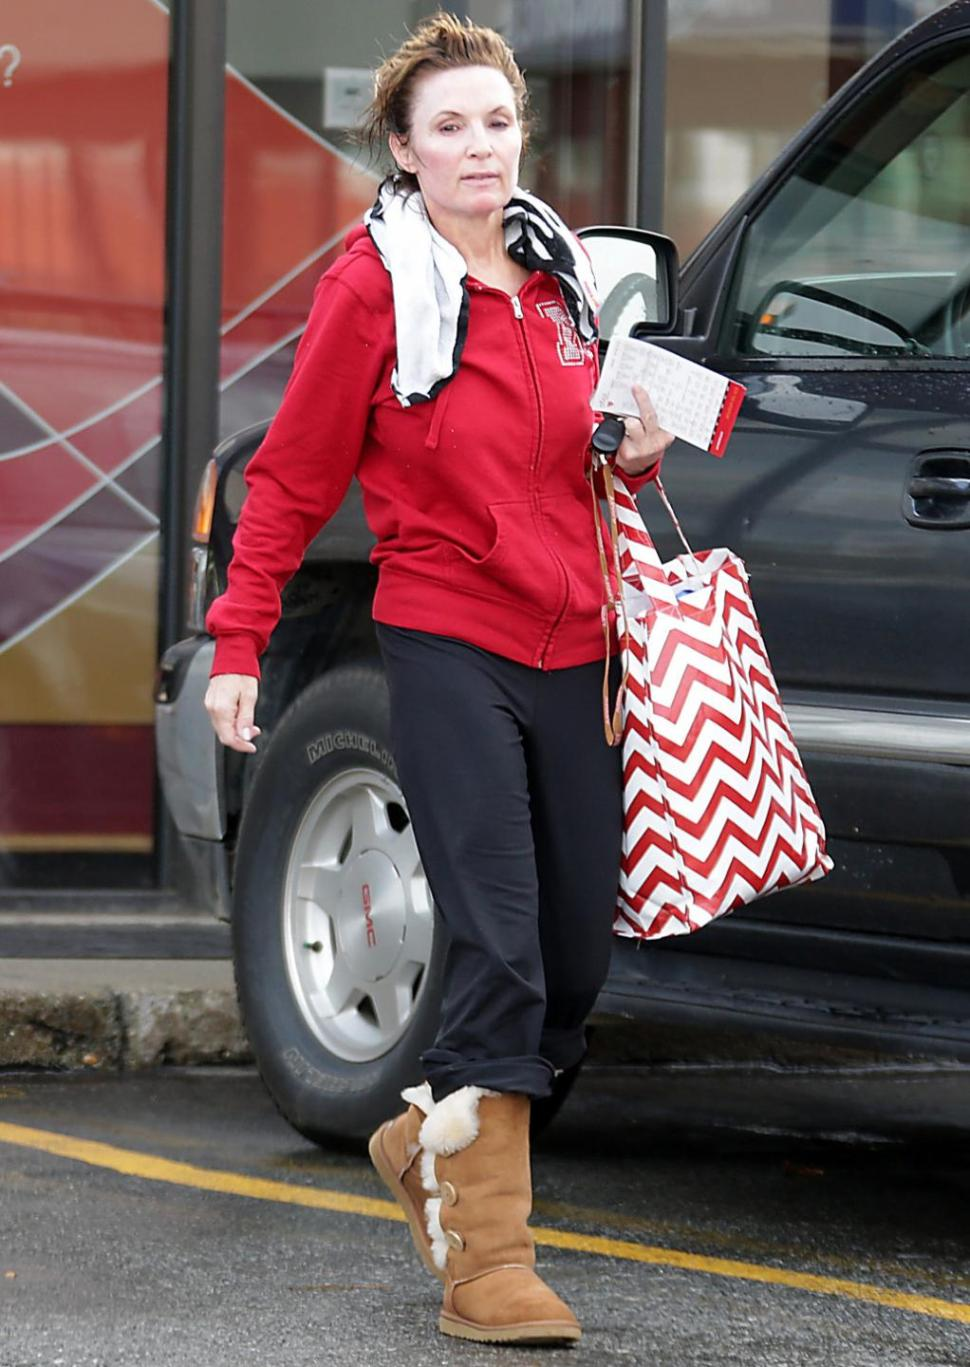 SPLASH NEWS/SPLASH NEWS A makeup-free, wedding-ring-free Sarah Palin was spotted shopping in Anchorage on Monday, just days after it emerged that her family was involved in a fight at a snowmobile party.